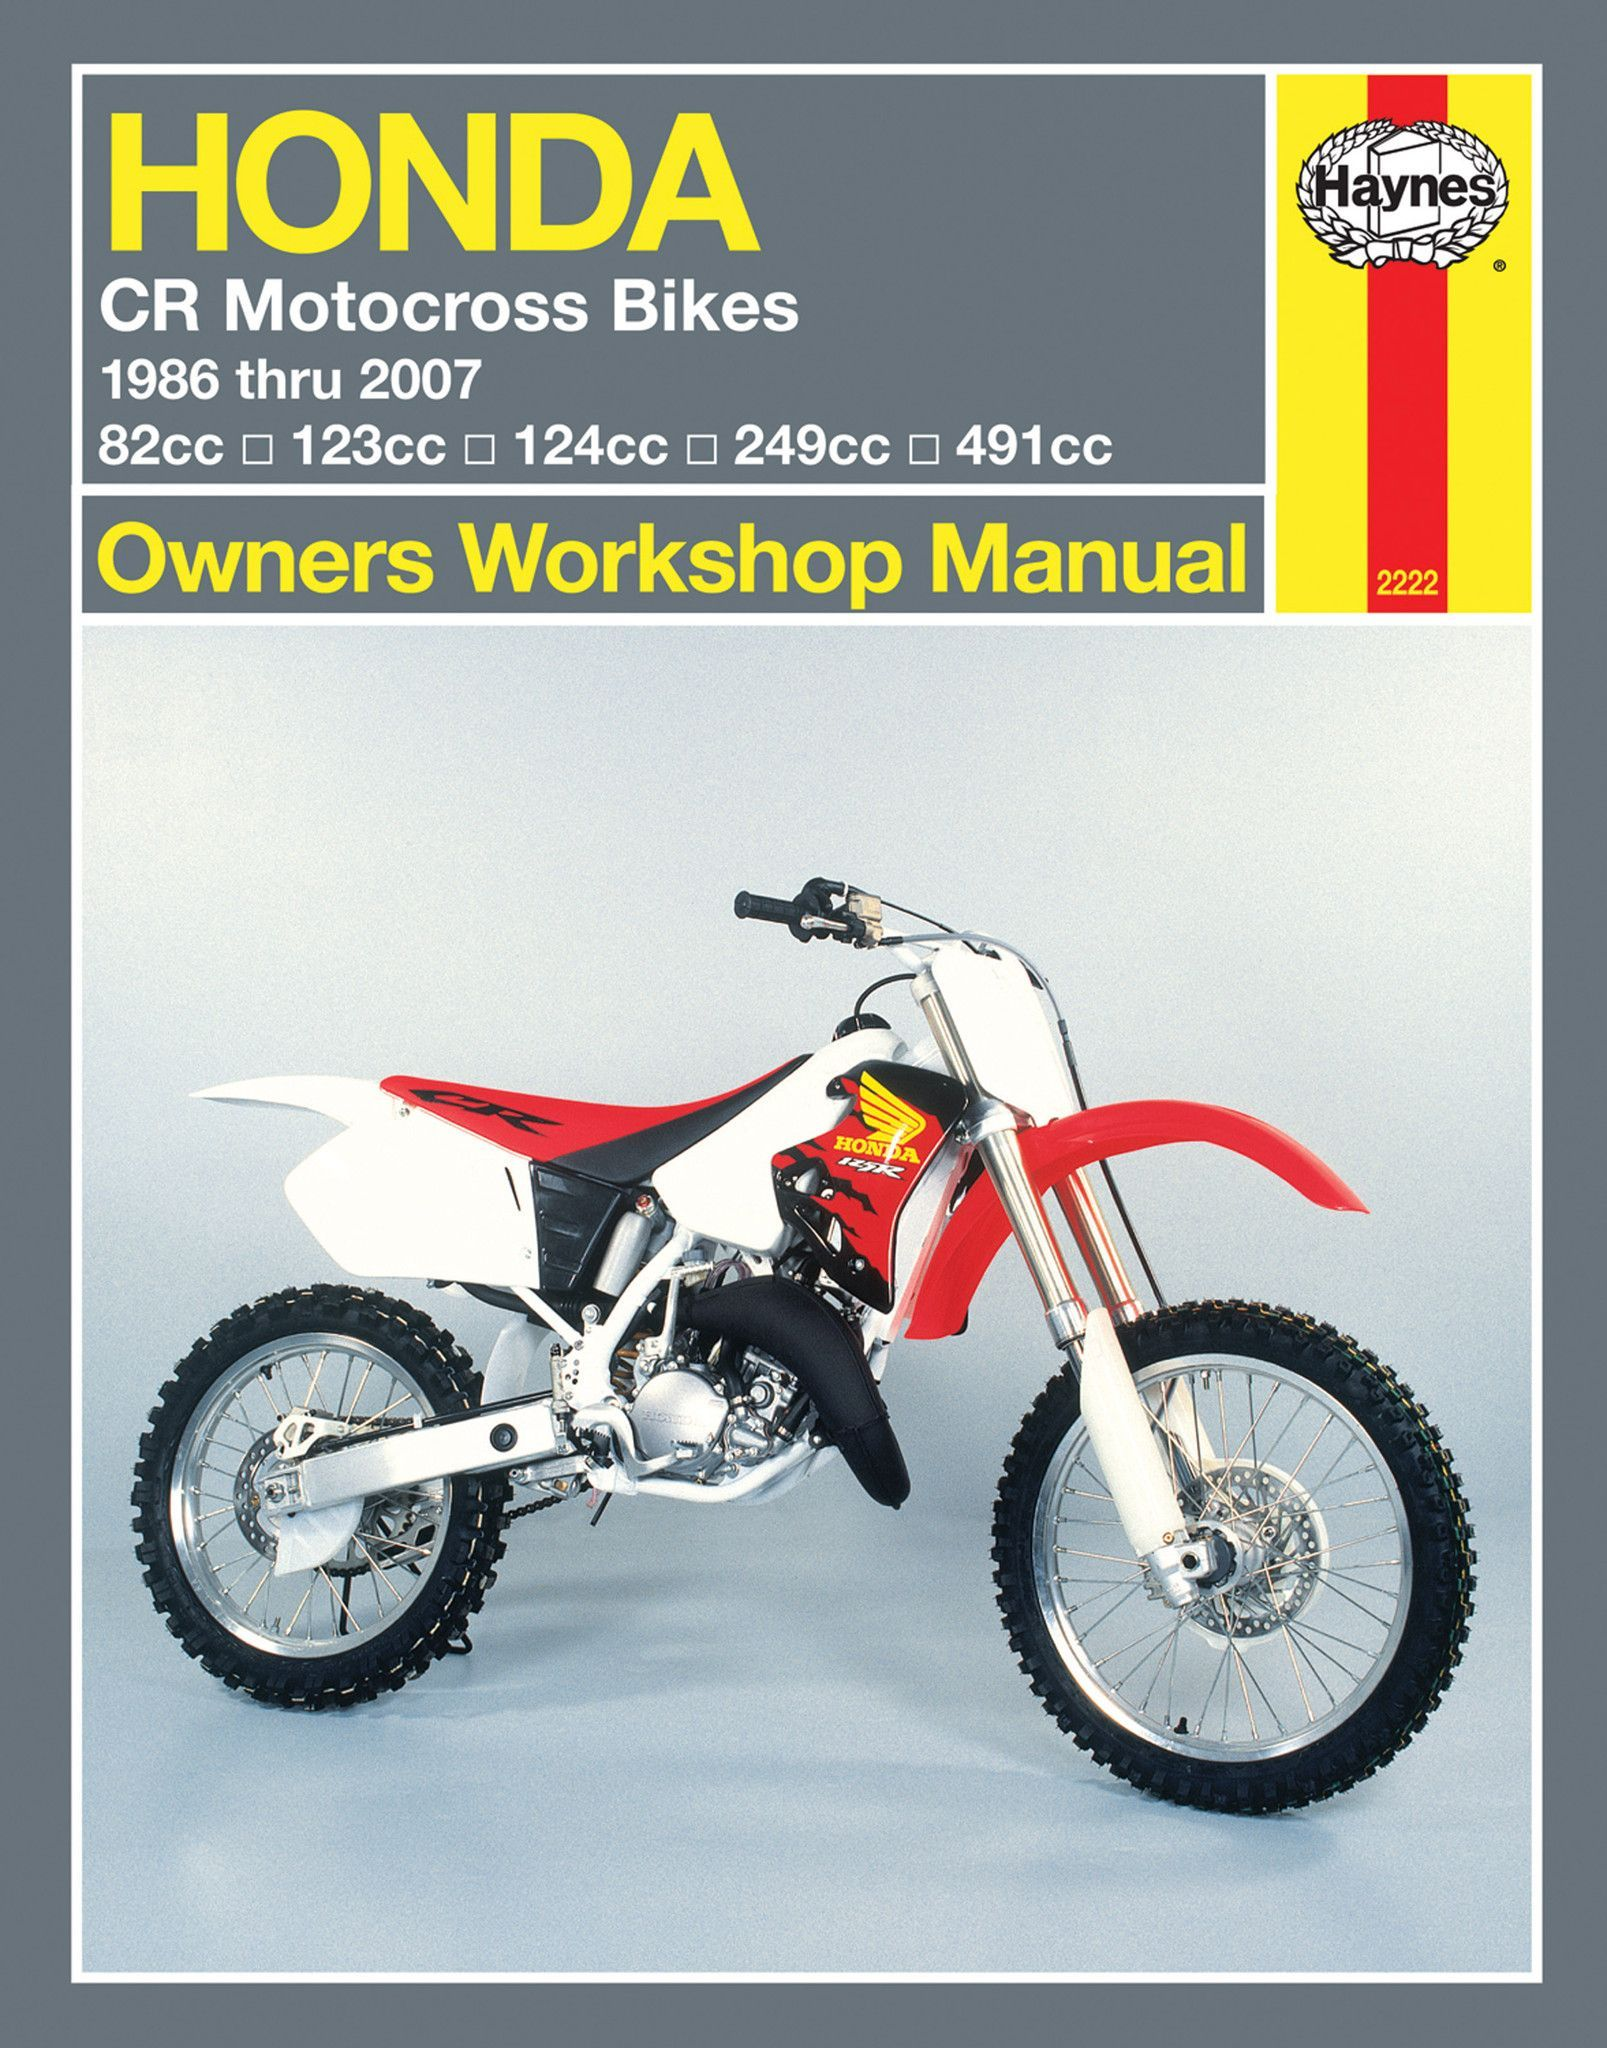 haynes m2222 repair manual for 1986 07 honda cr80 cr125r cr250r rh pinterest com 1994 Honda CR250 1998 honda cr250 service manual